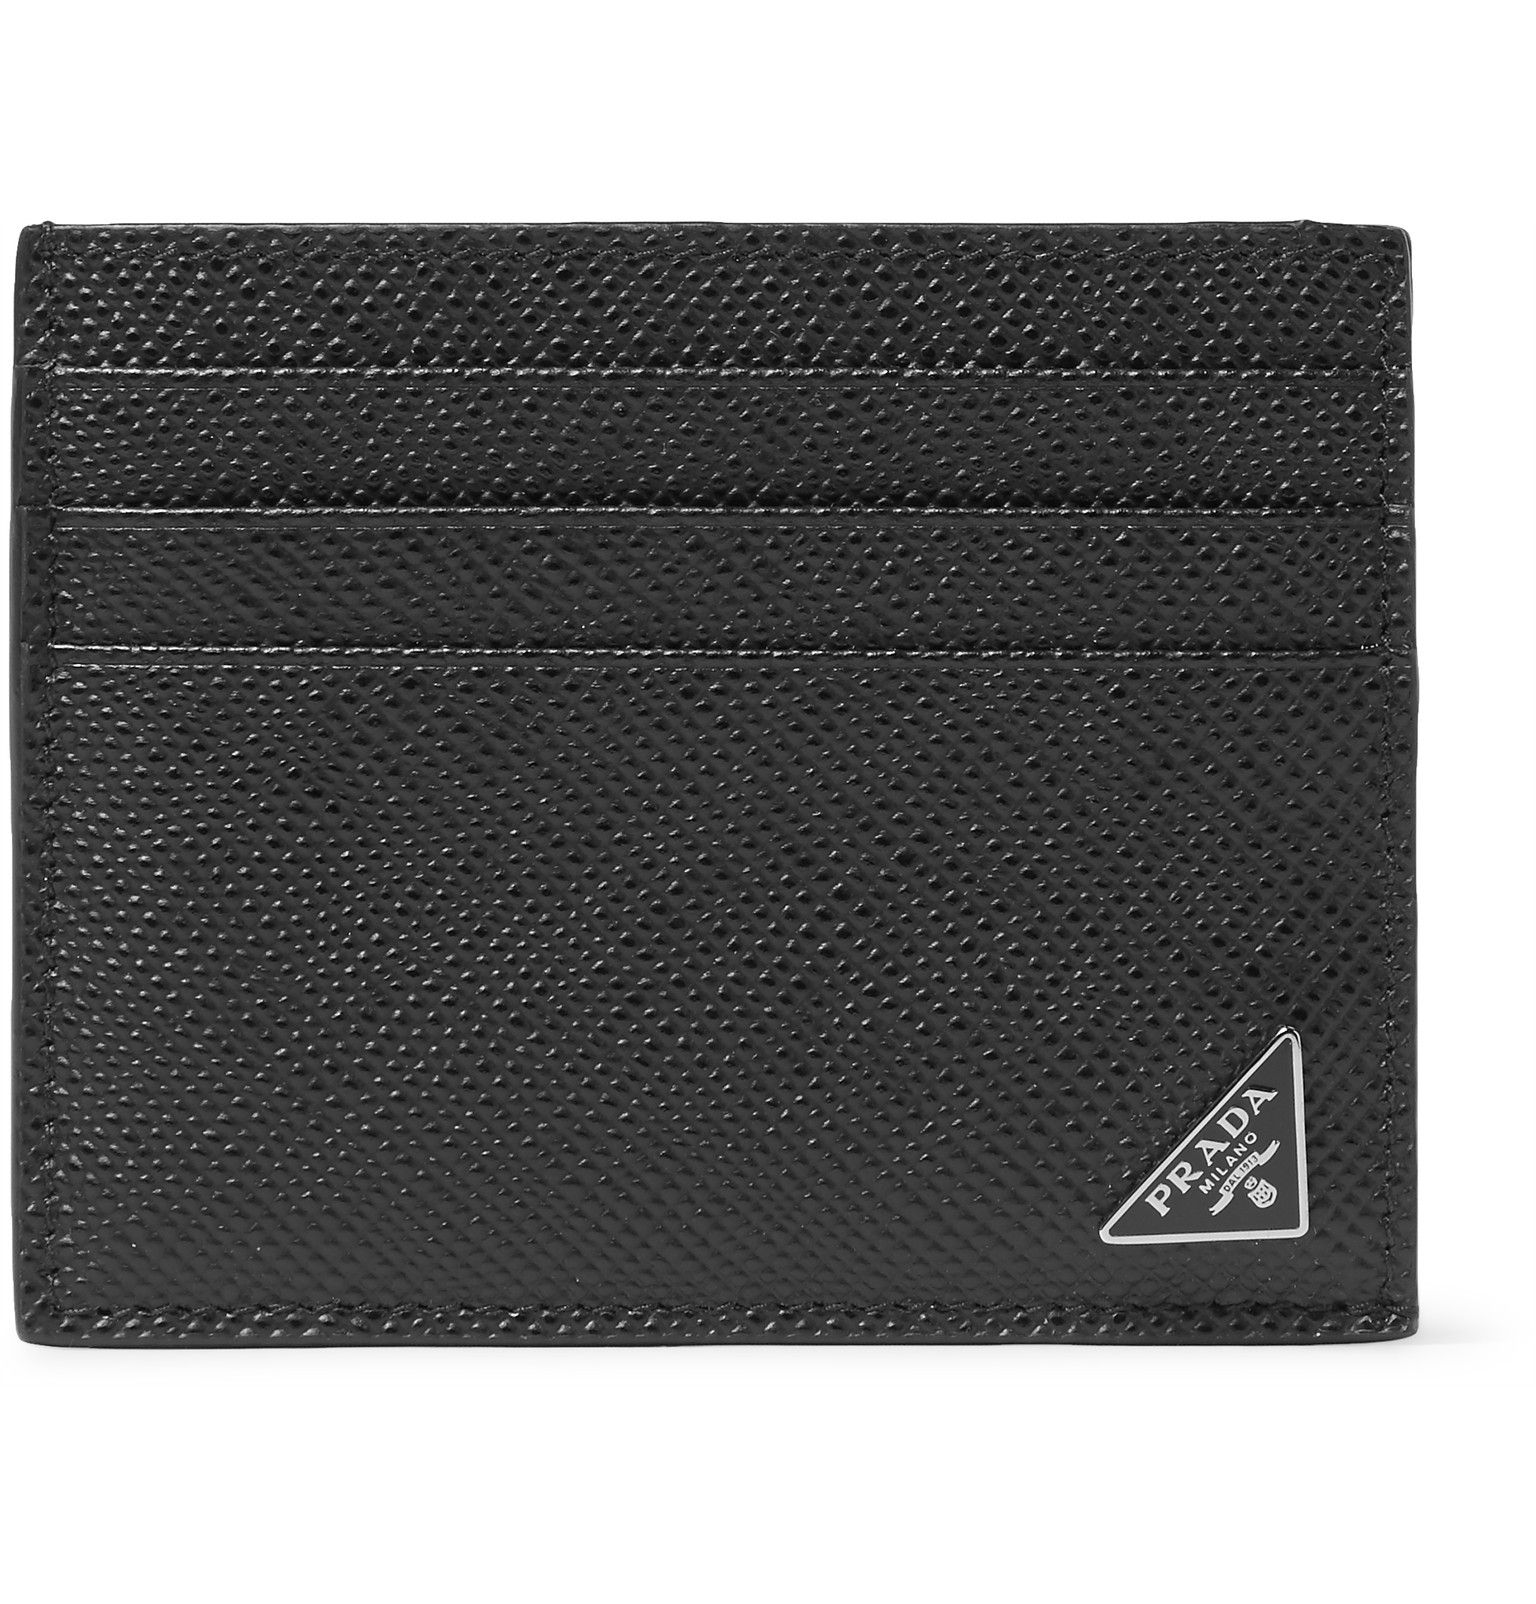 e65945506d08 Crafted from Saffiano leather, Prada's cardholder is the smartest way to  keep your cards and bills in order. It's detailed with the brand's  enamelled ...